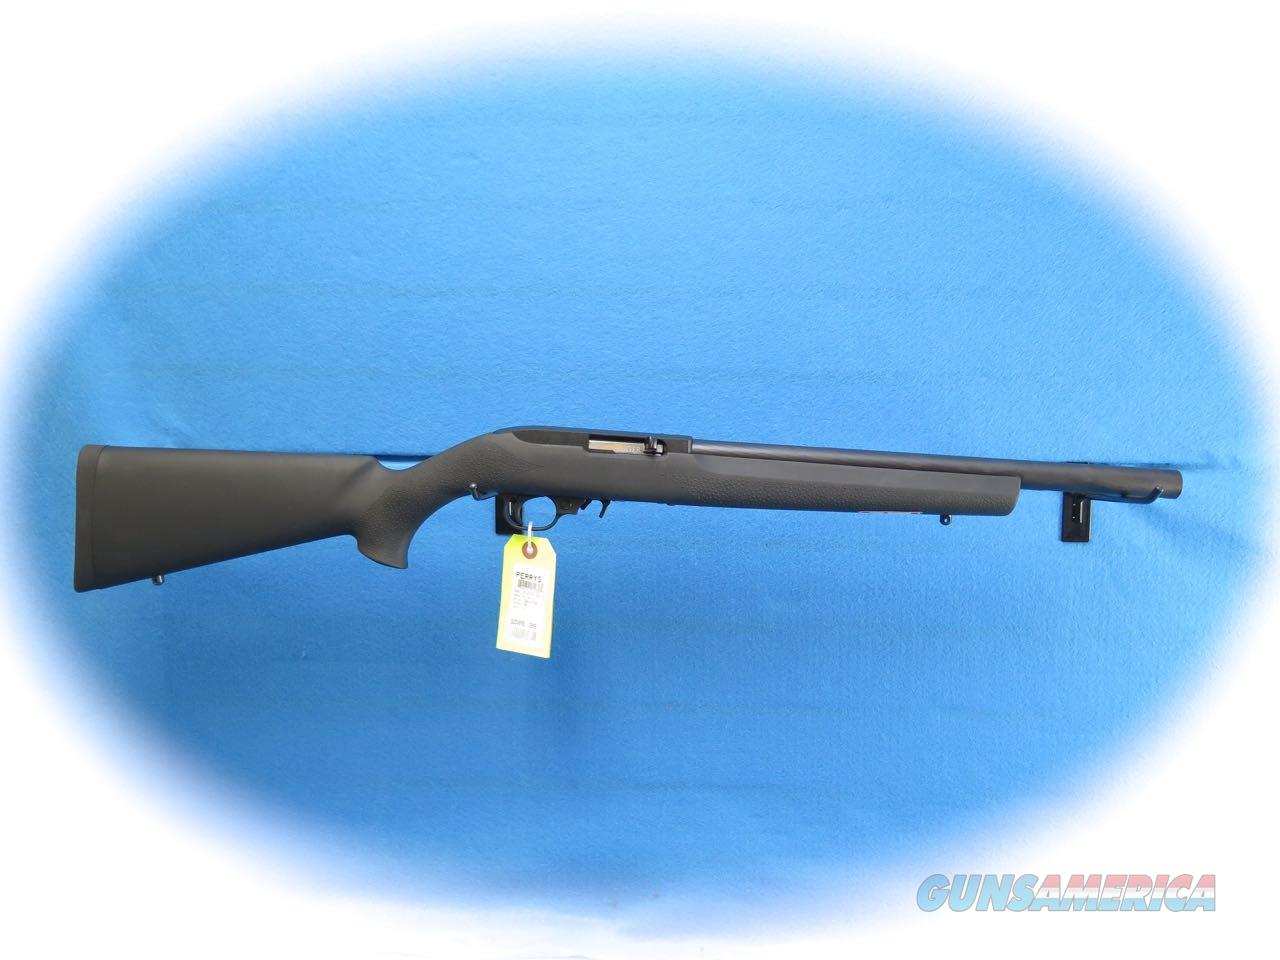 Ruger  10/22 Tactical .22 LR Rifle with Heavy Barrel Model 1230 **New**  Guns > Rifles > Ruger Rifles > 10-22